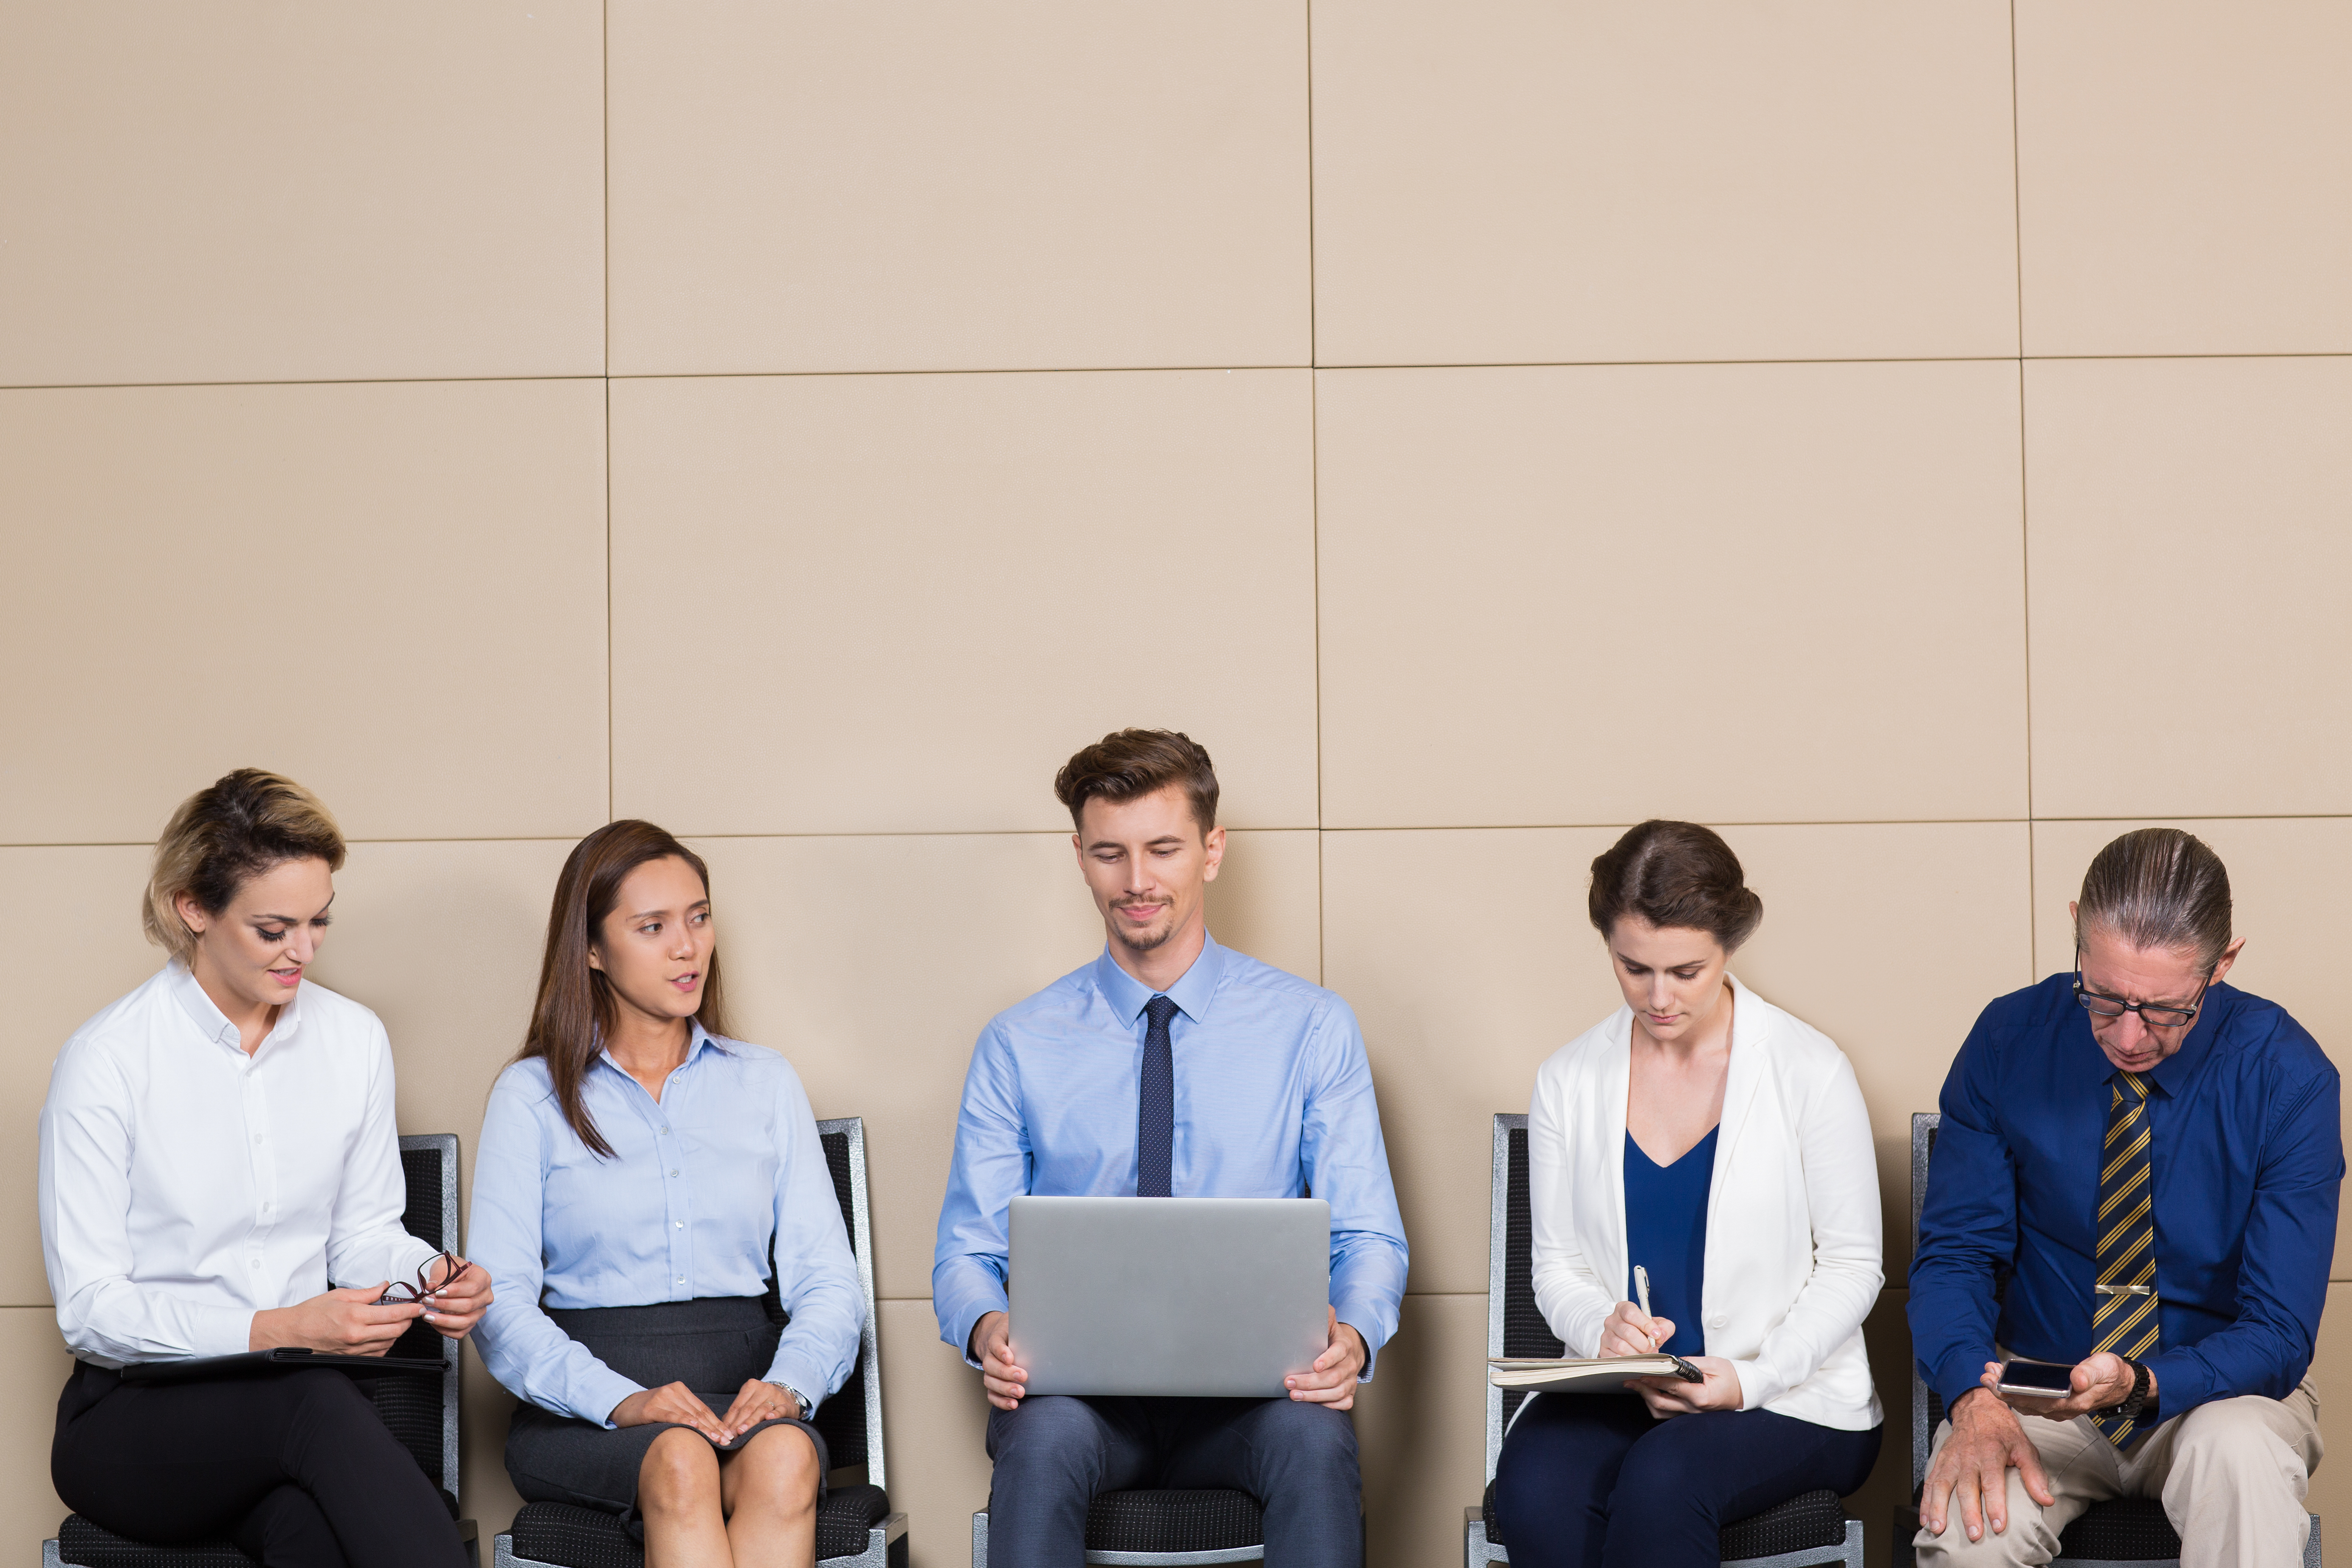 Medical Engineers might have some useful tips for you to prepare for your Skype interview